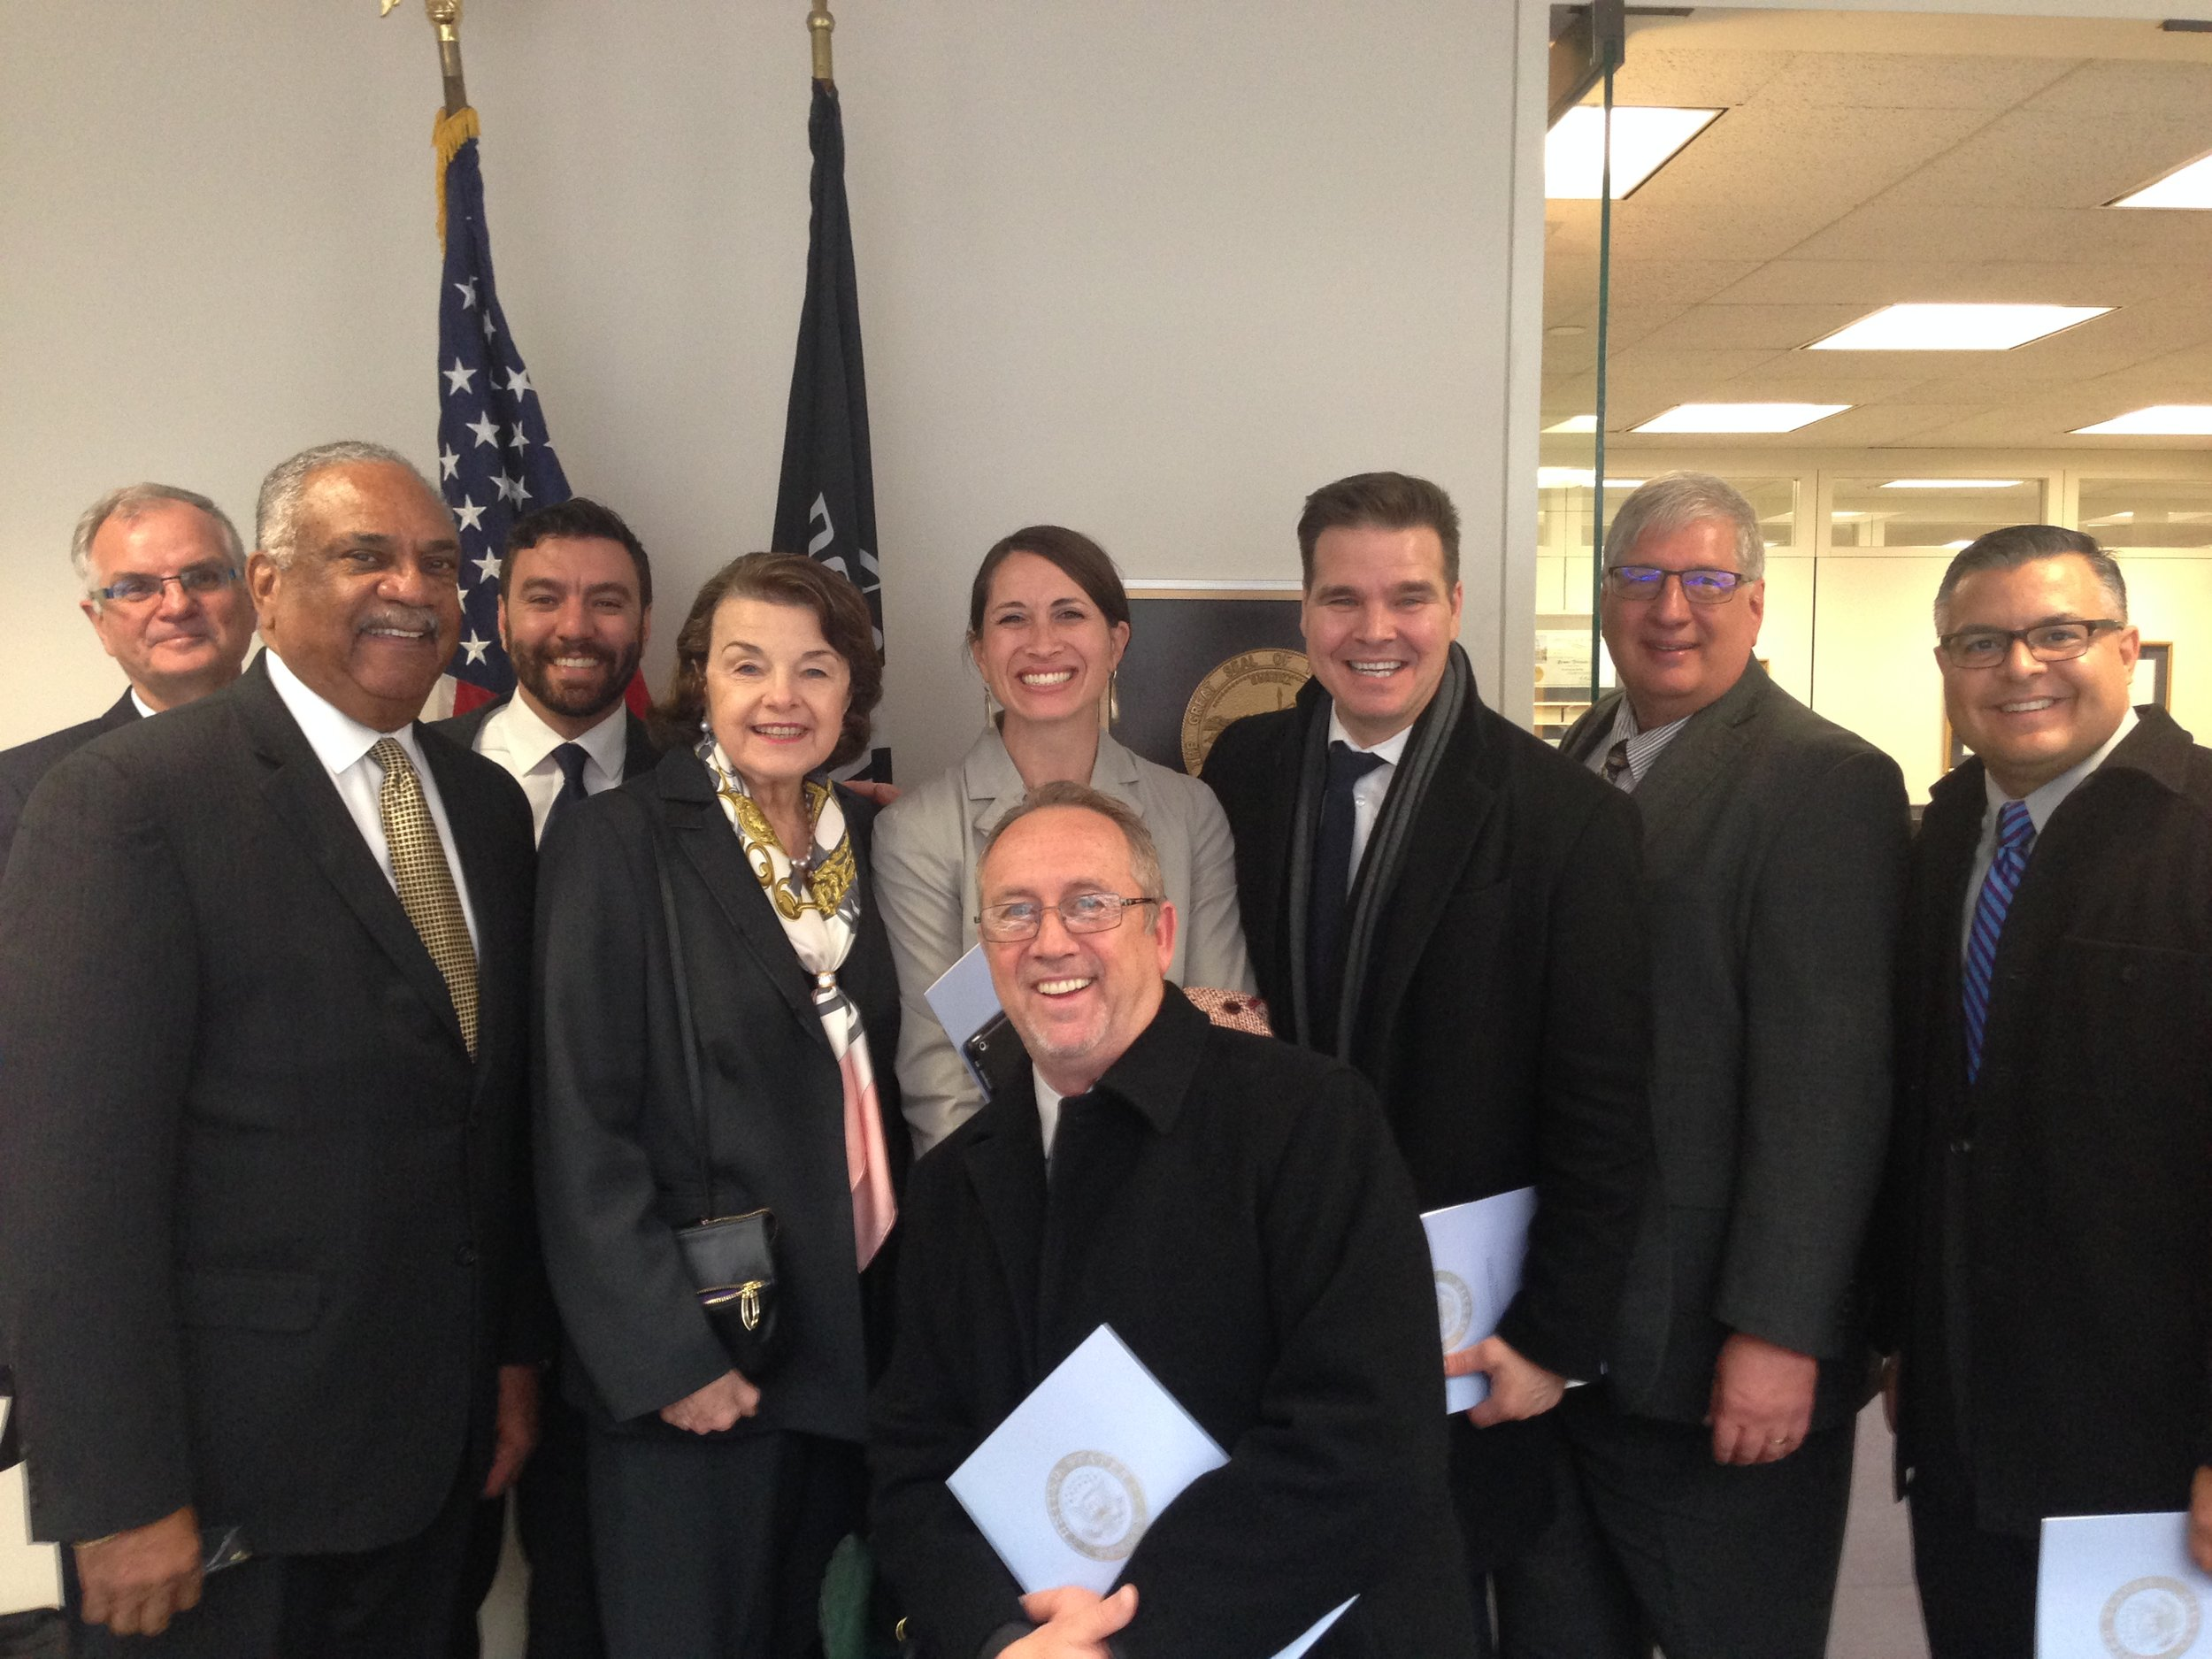 SENATOR DIANE FEINSTEIN AND VRM STAFF, KERN COUNTY MISSION, LA, AND SAN DIEGO MISSION REPS